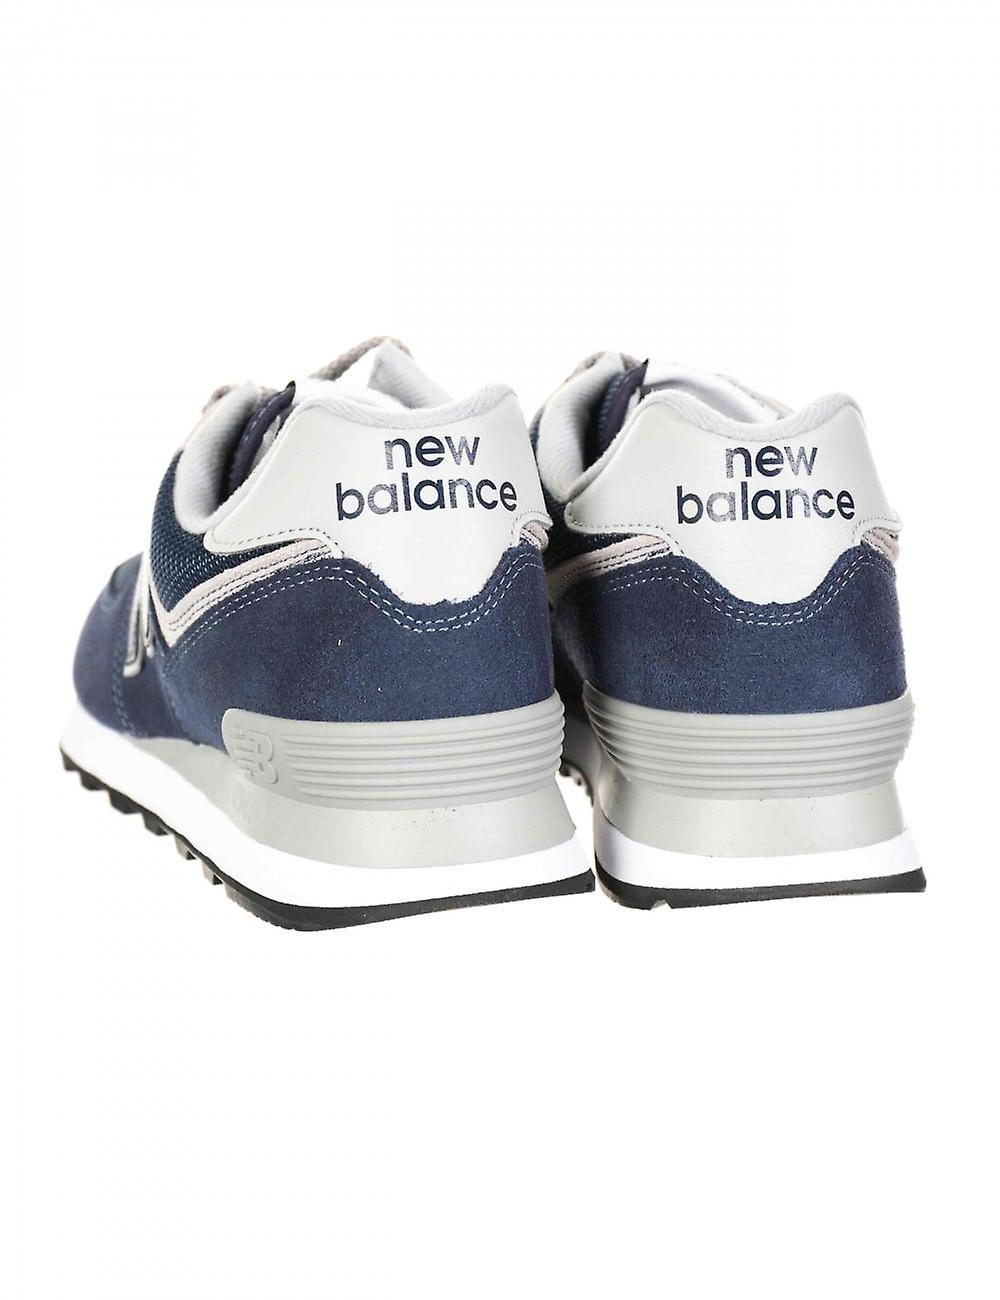 New Balance Ml574egn Trainers - Navy